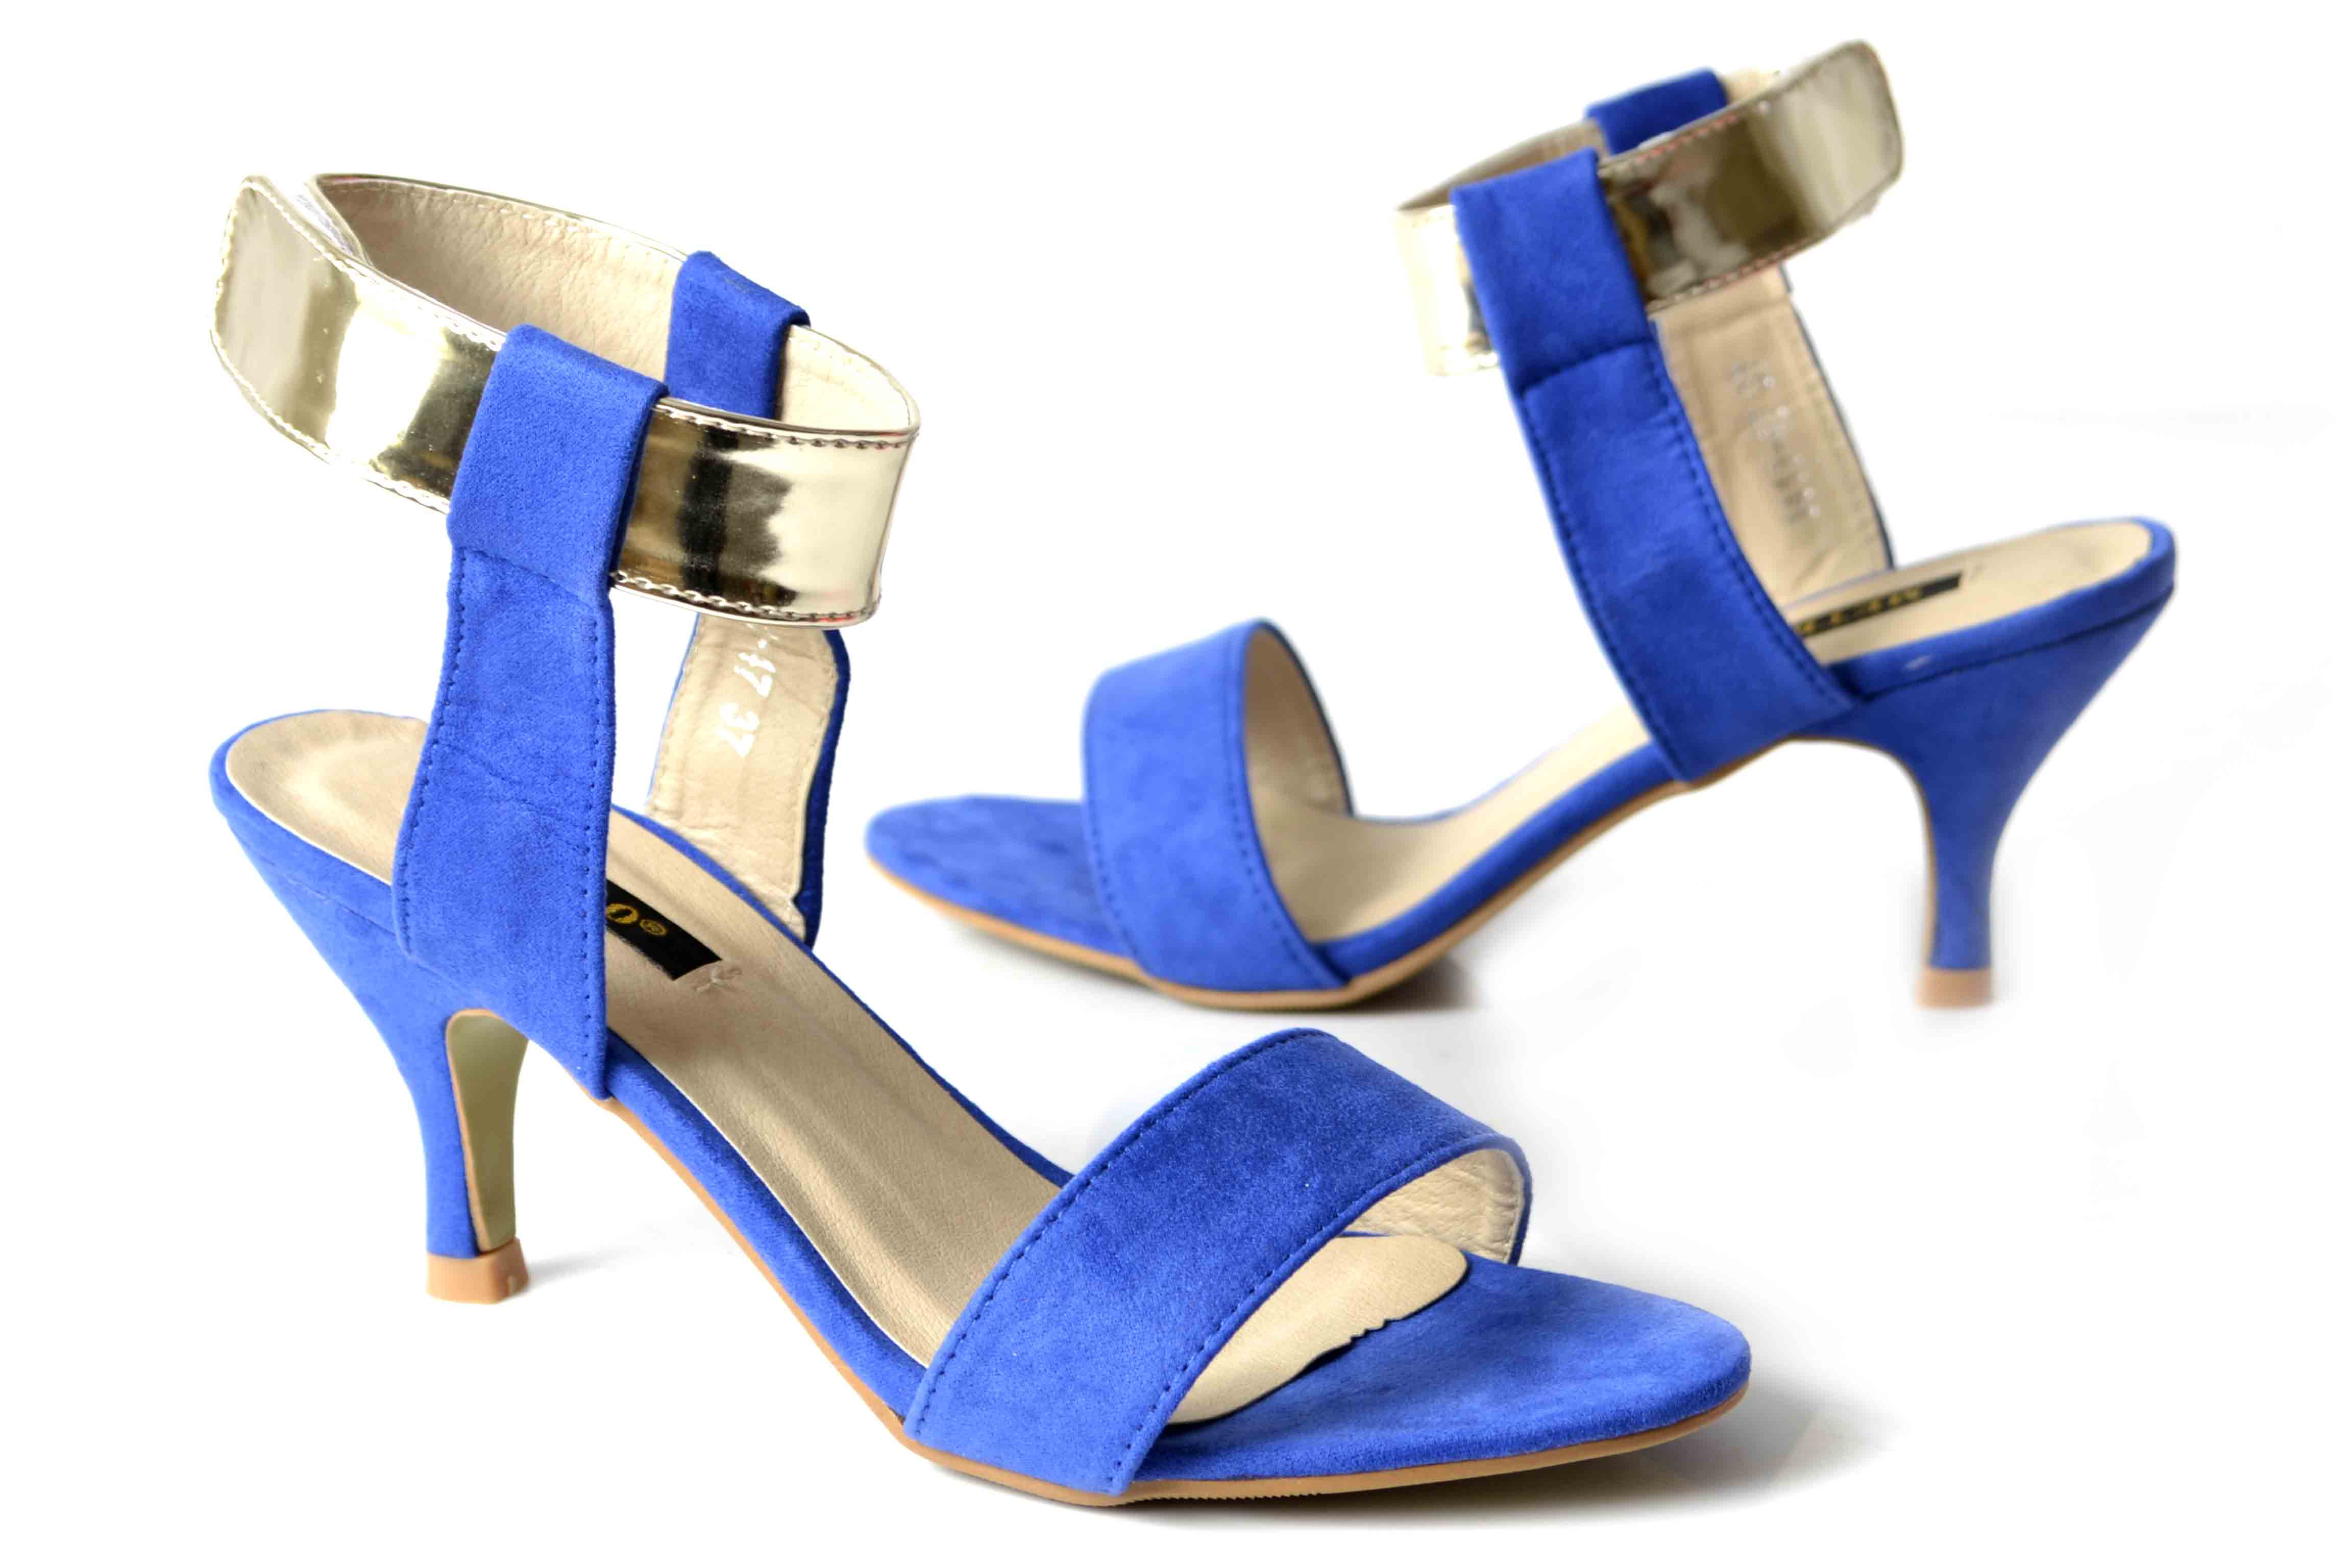 Metro-Shoes-Spring-Summer-Collection-2015-2016 (2)